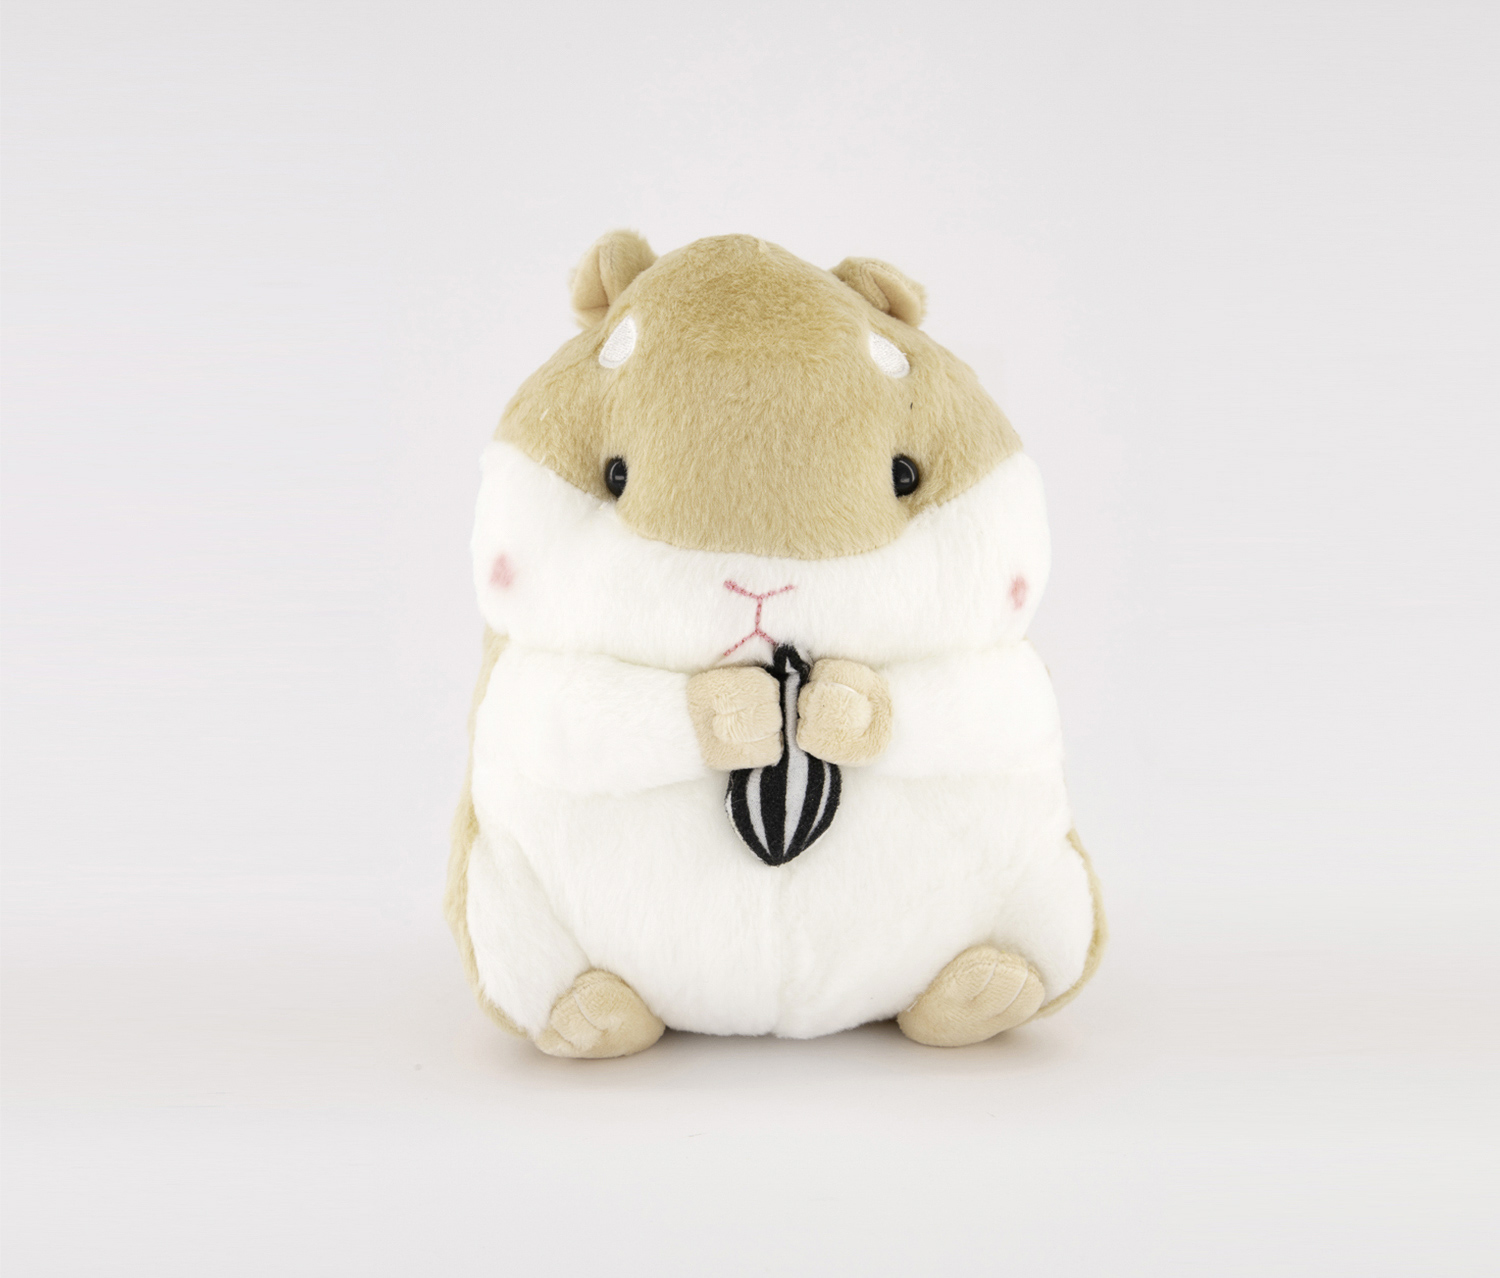 Hamster Plush Toy, White/Light Brown